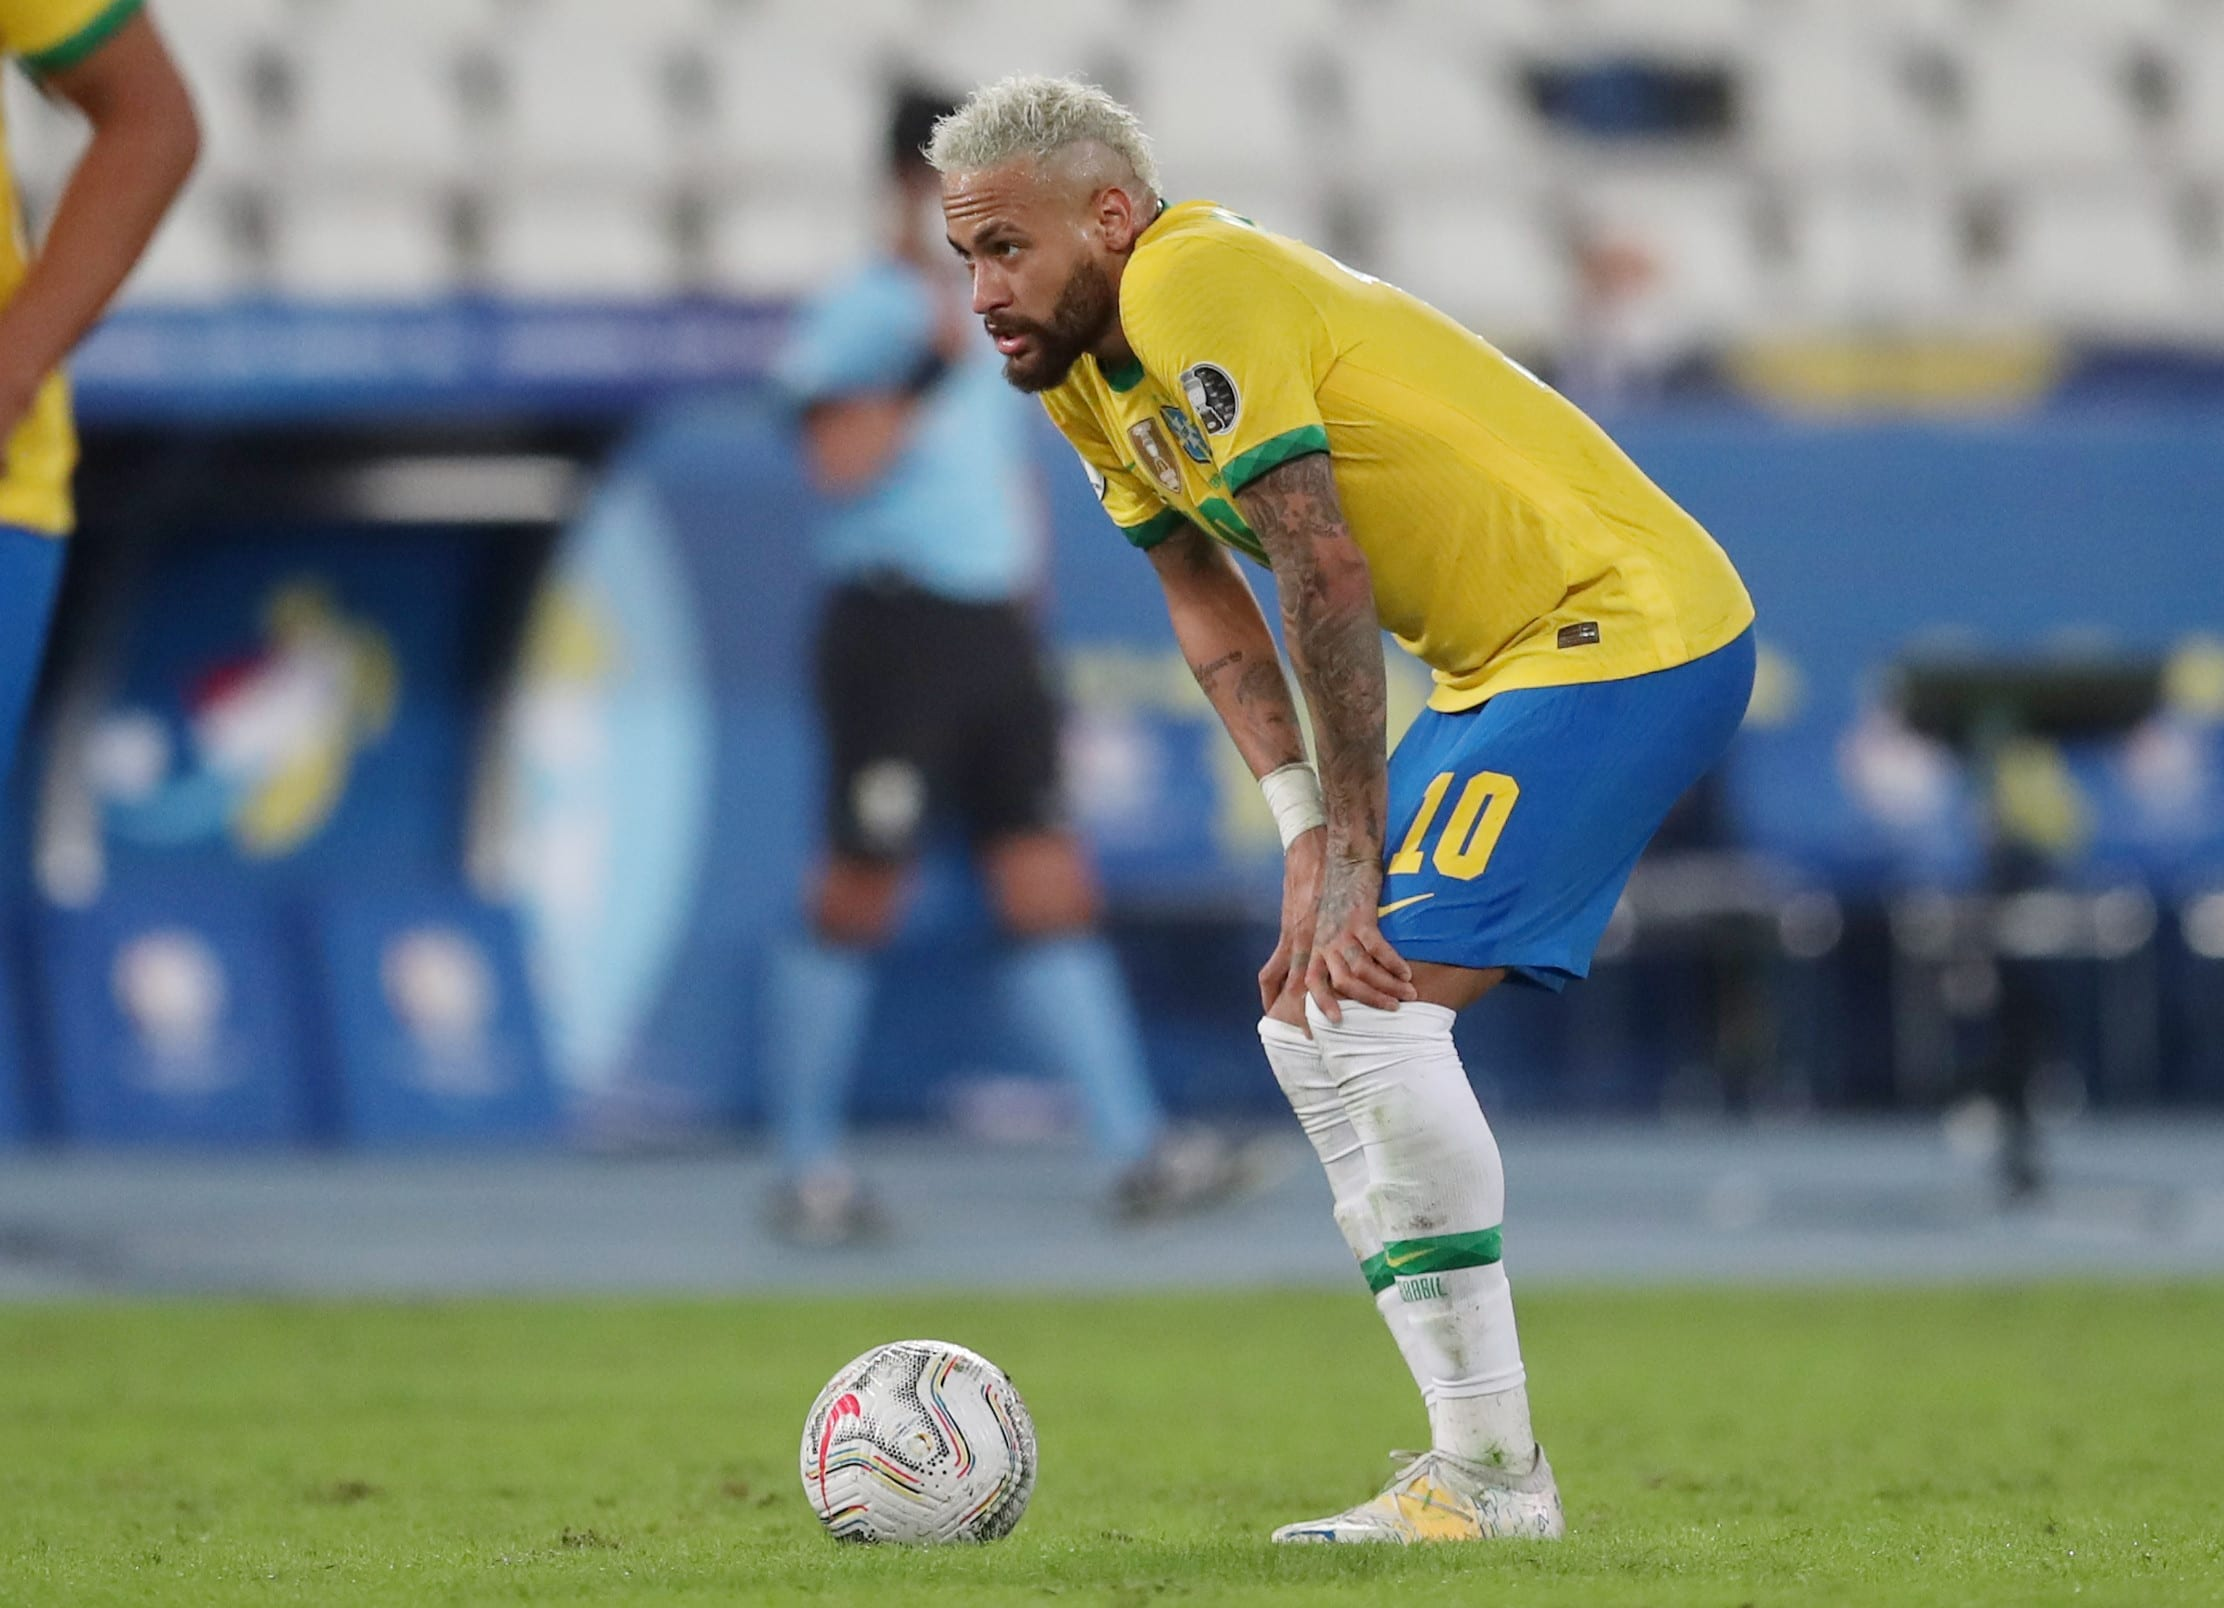 Neymar is a player for the Brazil national team